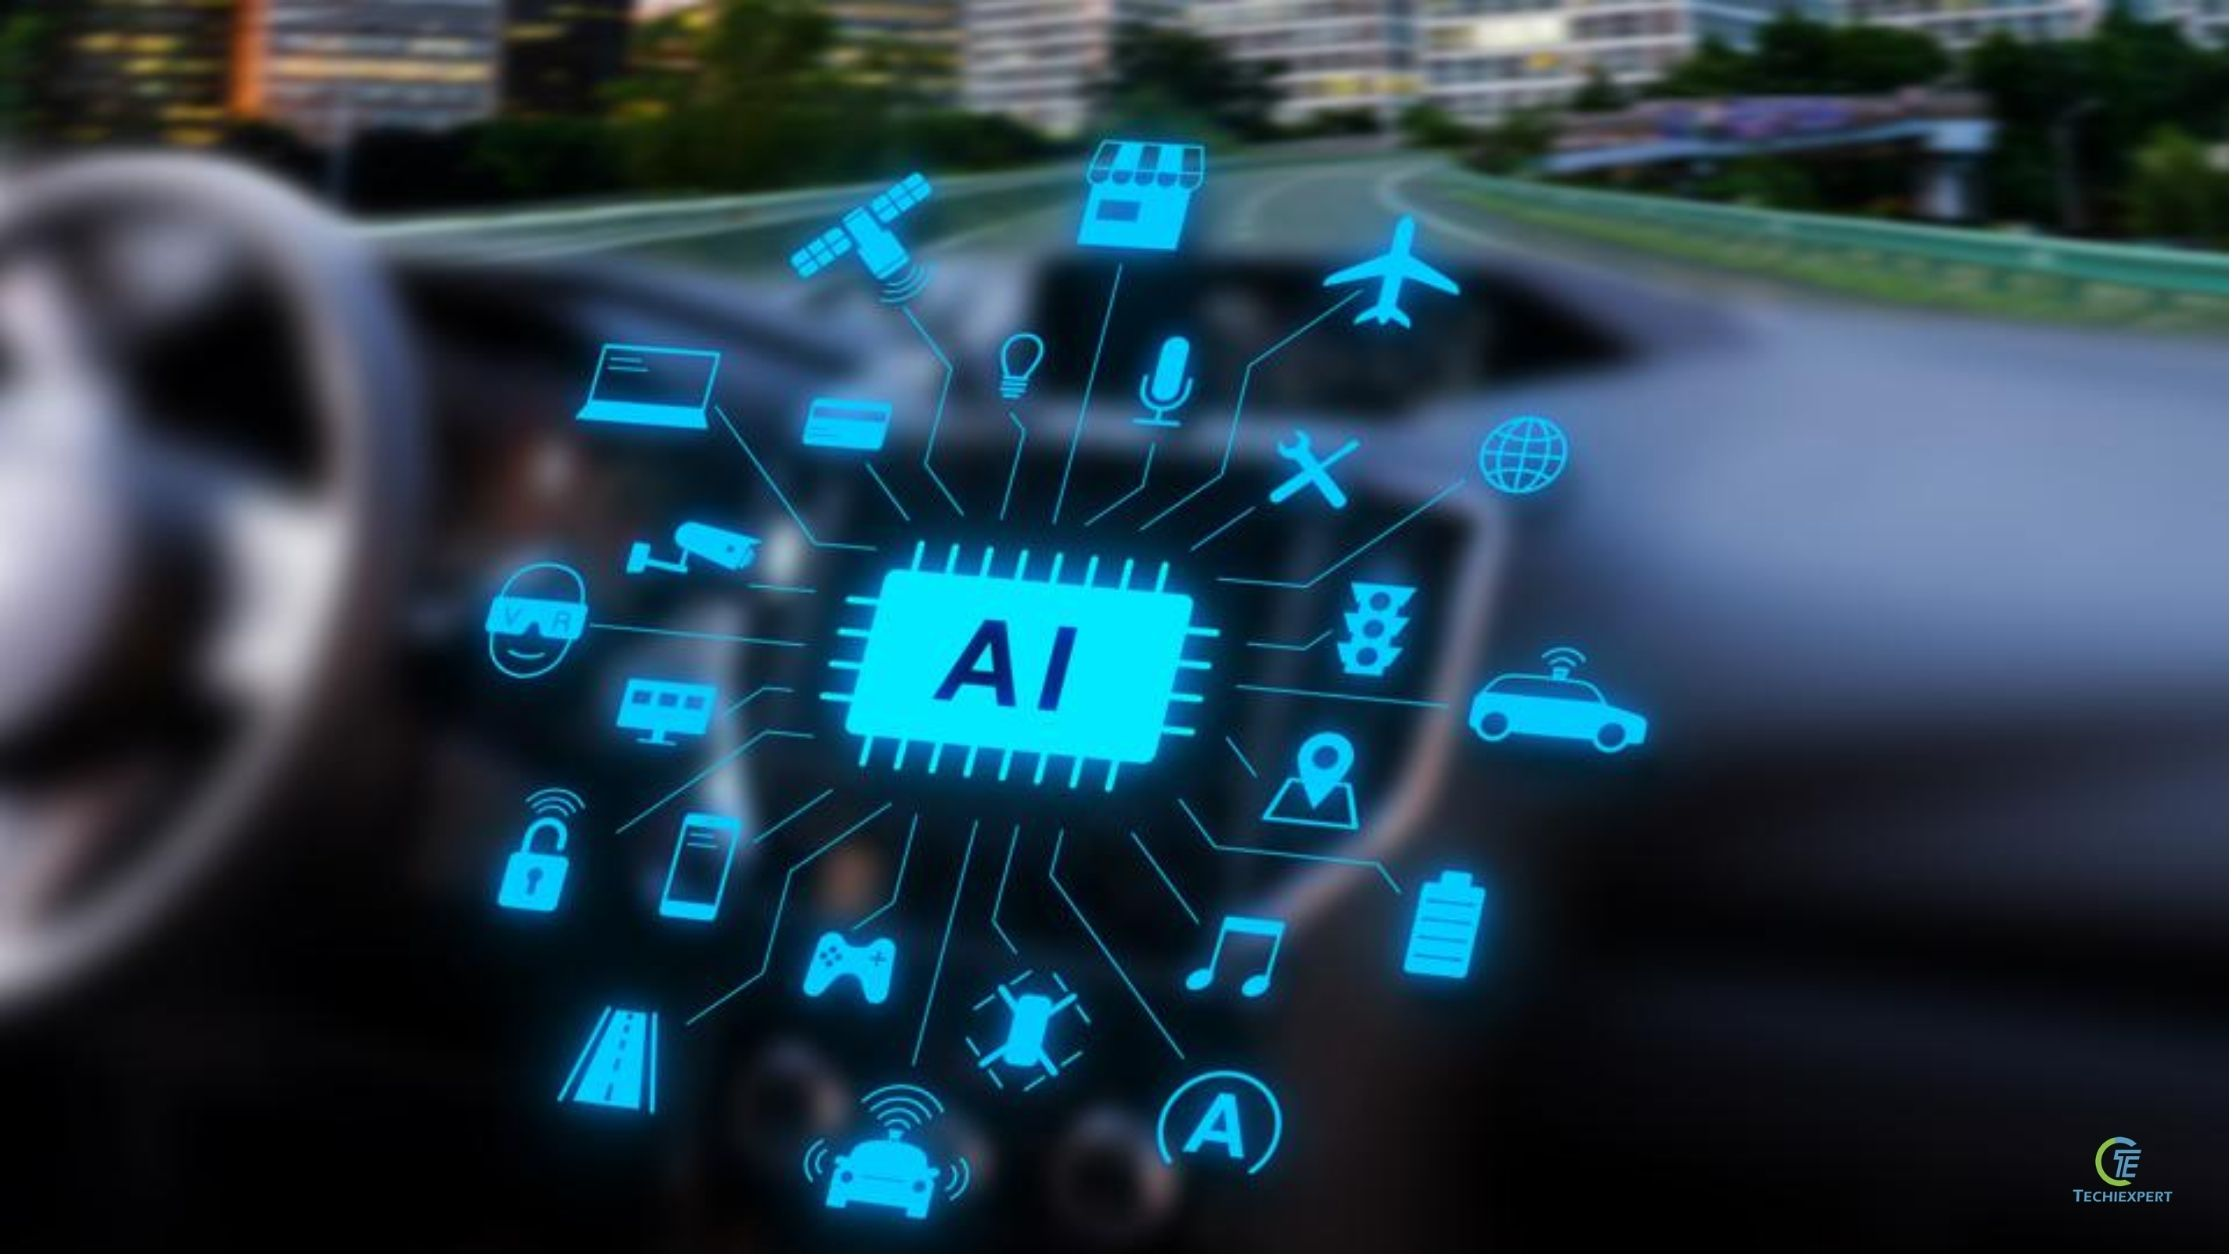 How Artificial Intelligence Will Change The Future By AI Explosion Including For AI Self-Driving Cars